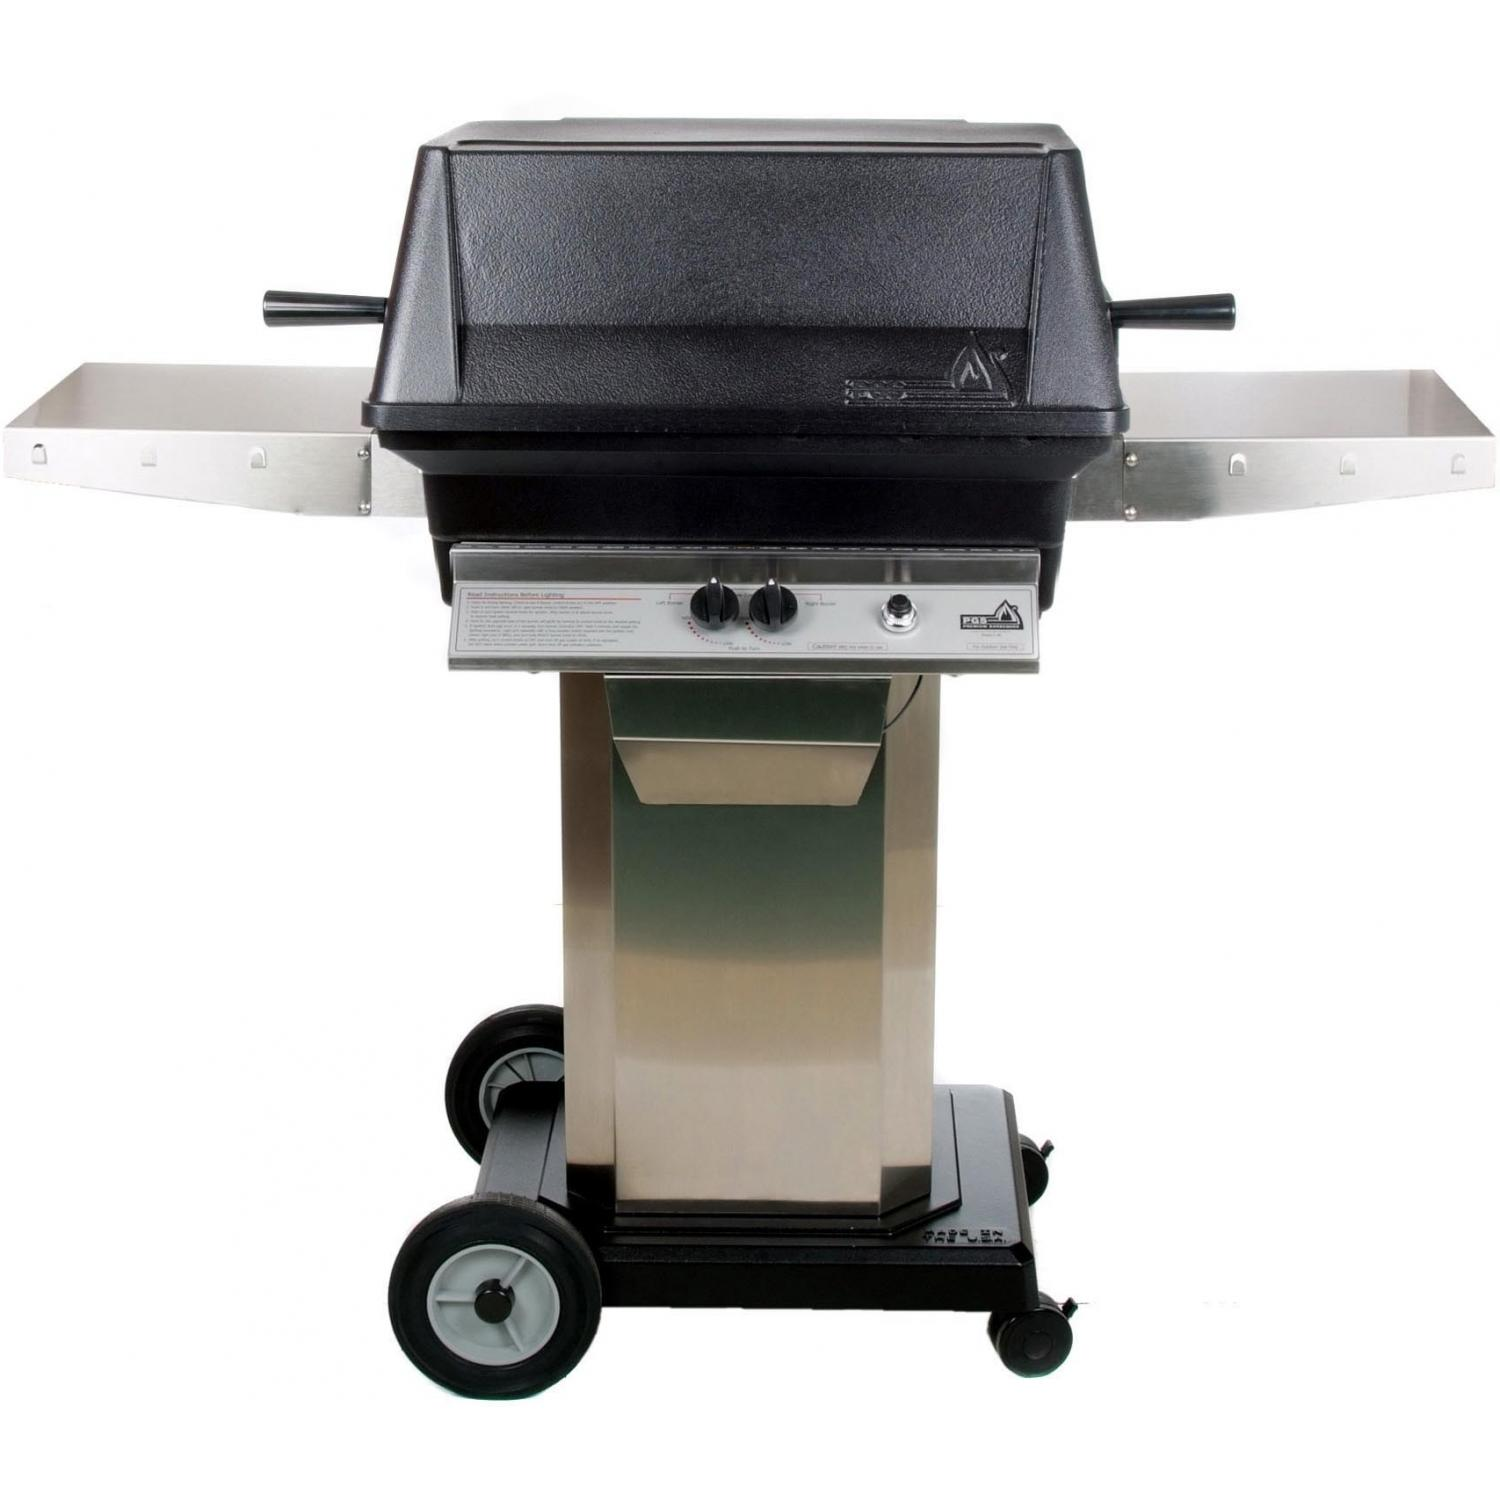 pgs gas grills a40 cast aluminum gas grill on stainless steel portable  pedestal base AQHNWIZ